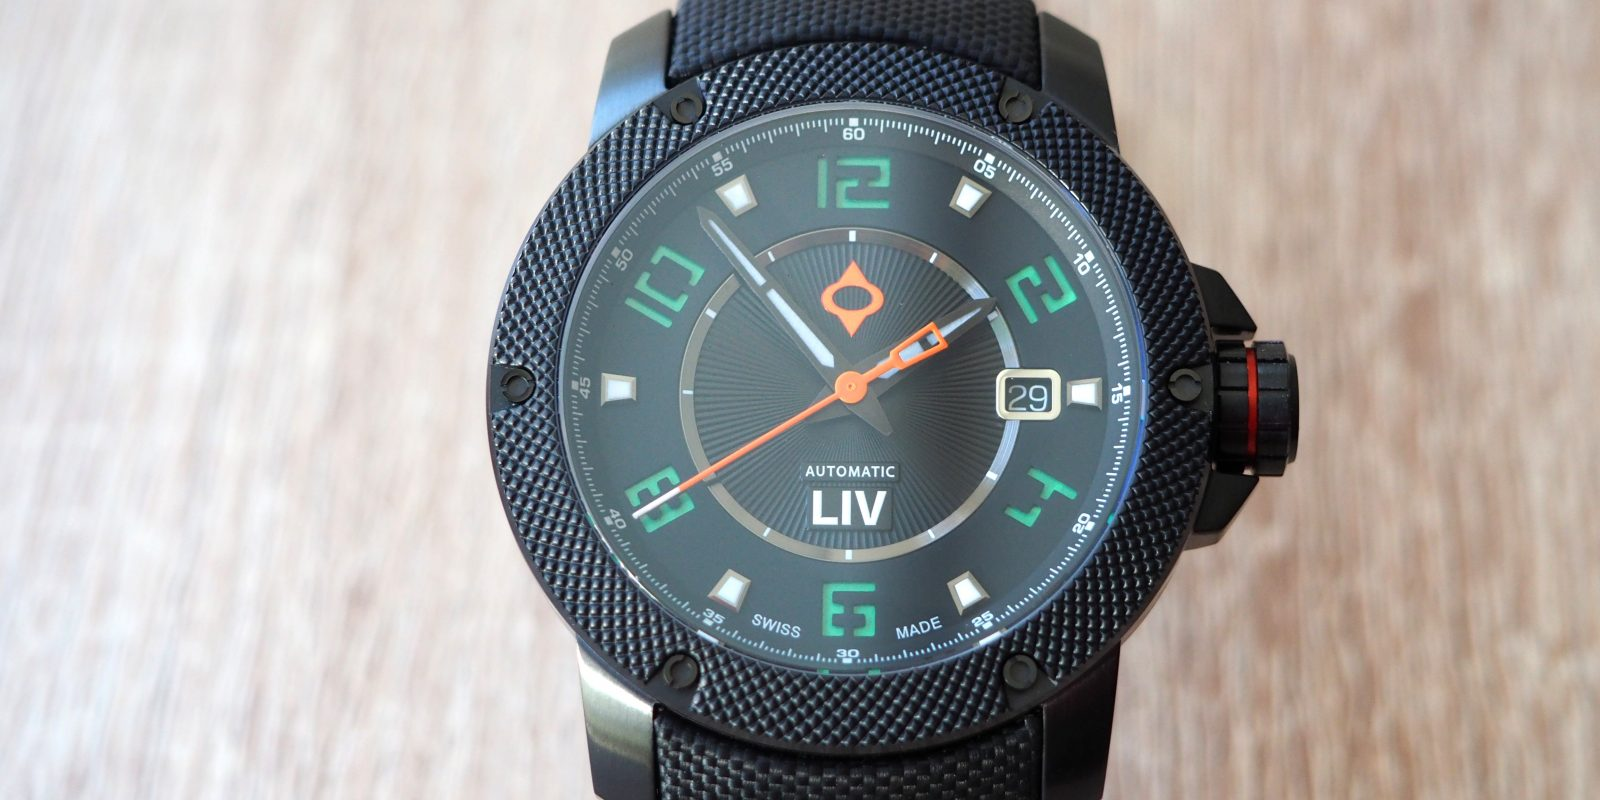 Liv GX1-A Swiss Automatic 1110.42.80 Watch Review